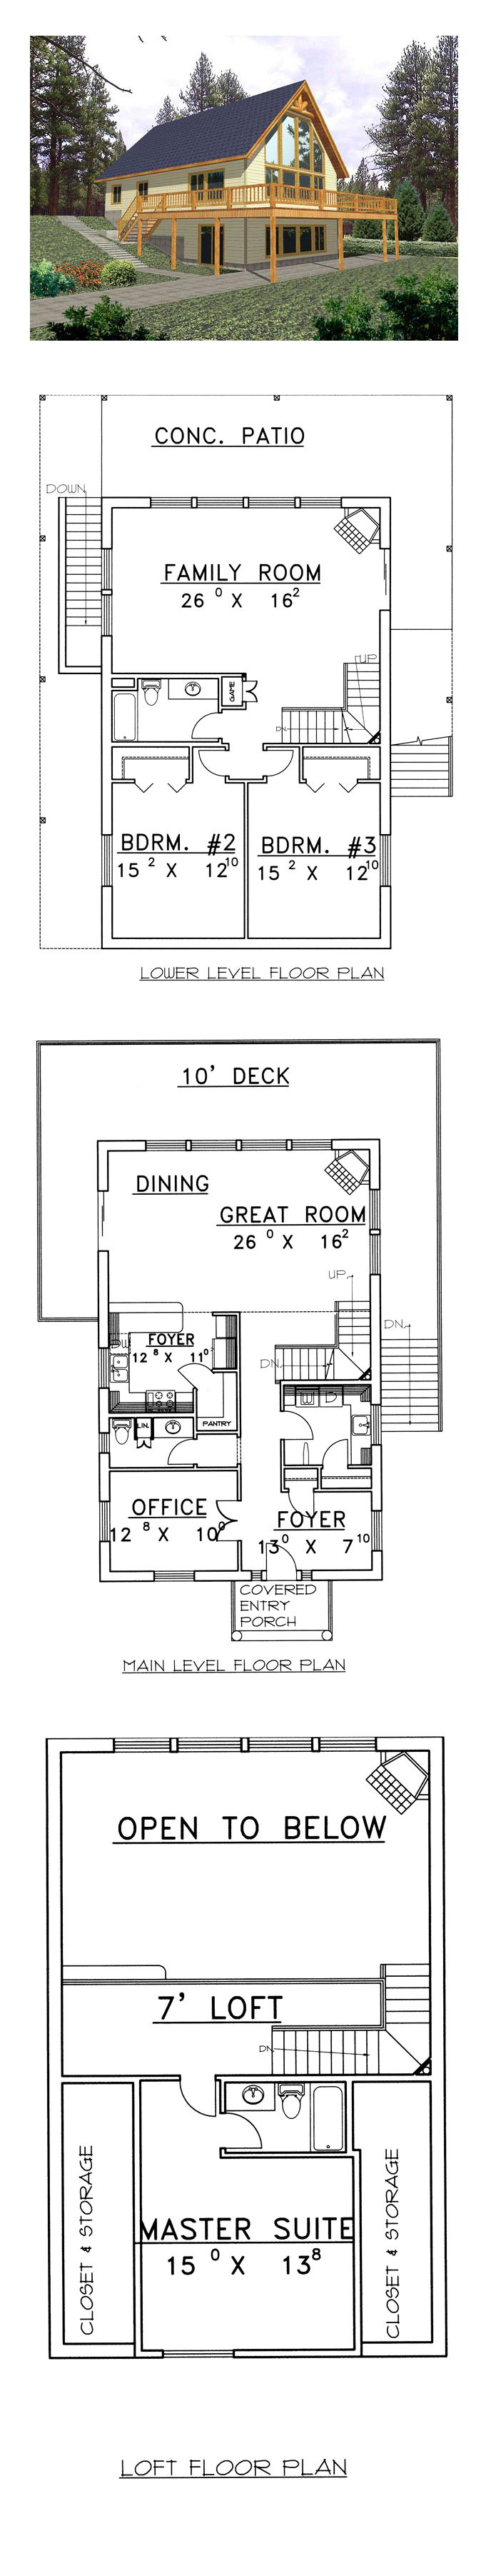 Hillside Home Plans 10 Handpicked Ideas To Discover In